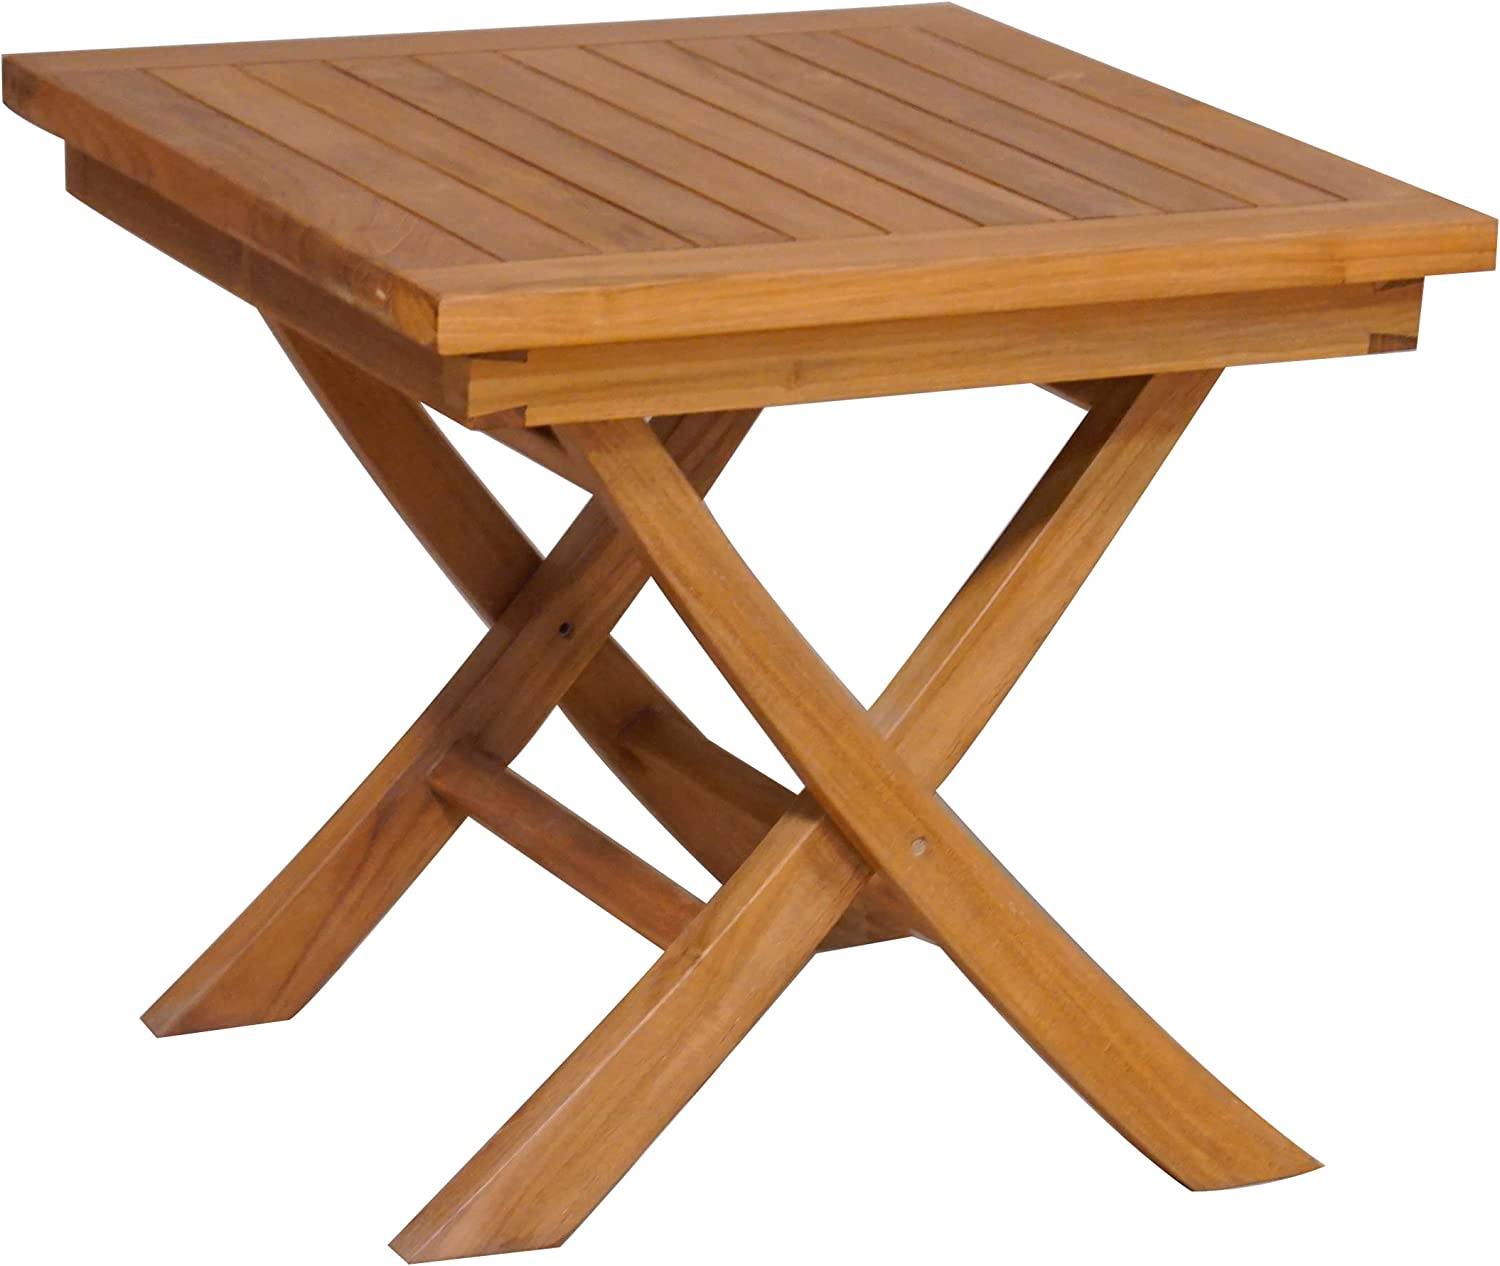 Teak Folding Side Table, Made from Solid A-Grade Teak Wood